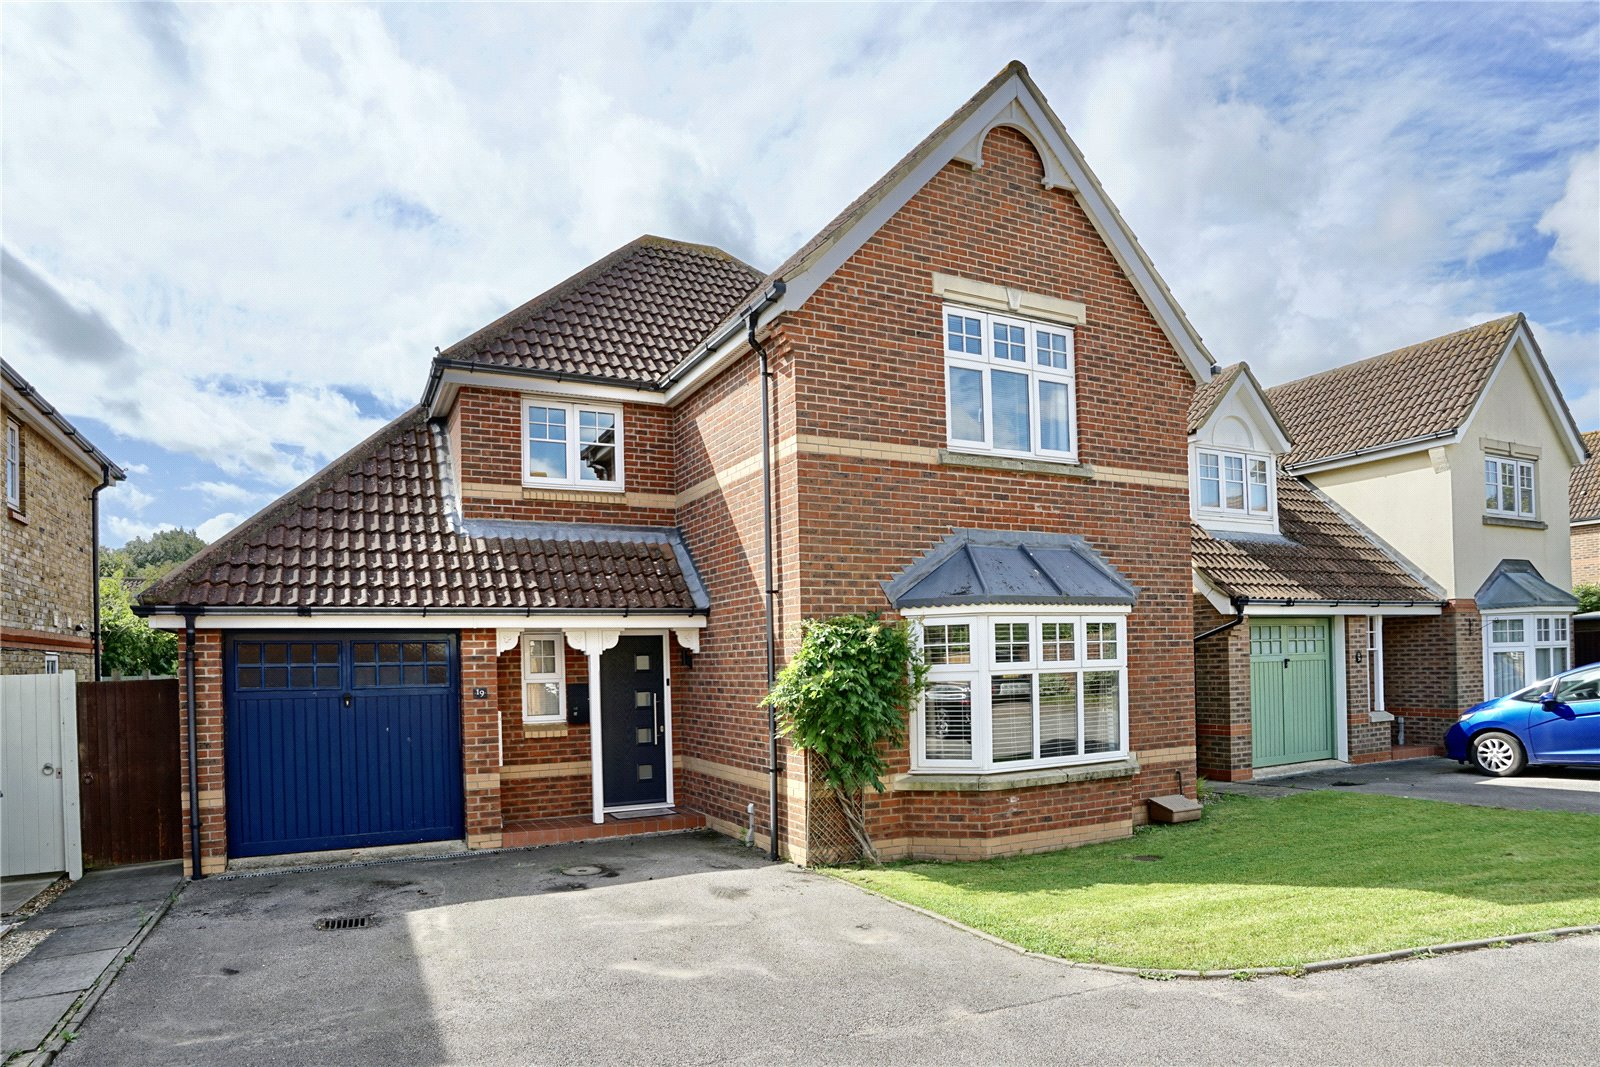 4 bed house for sale in Bluntisham, PE28 3XT, PE28